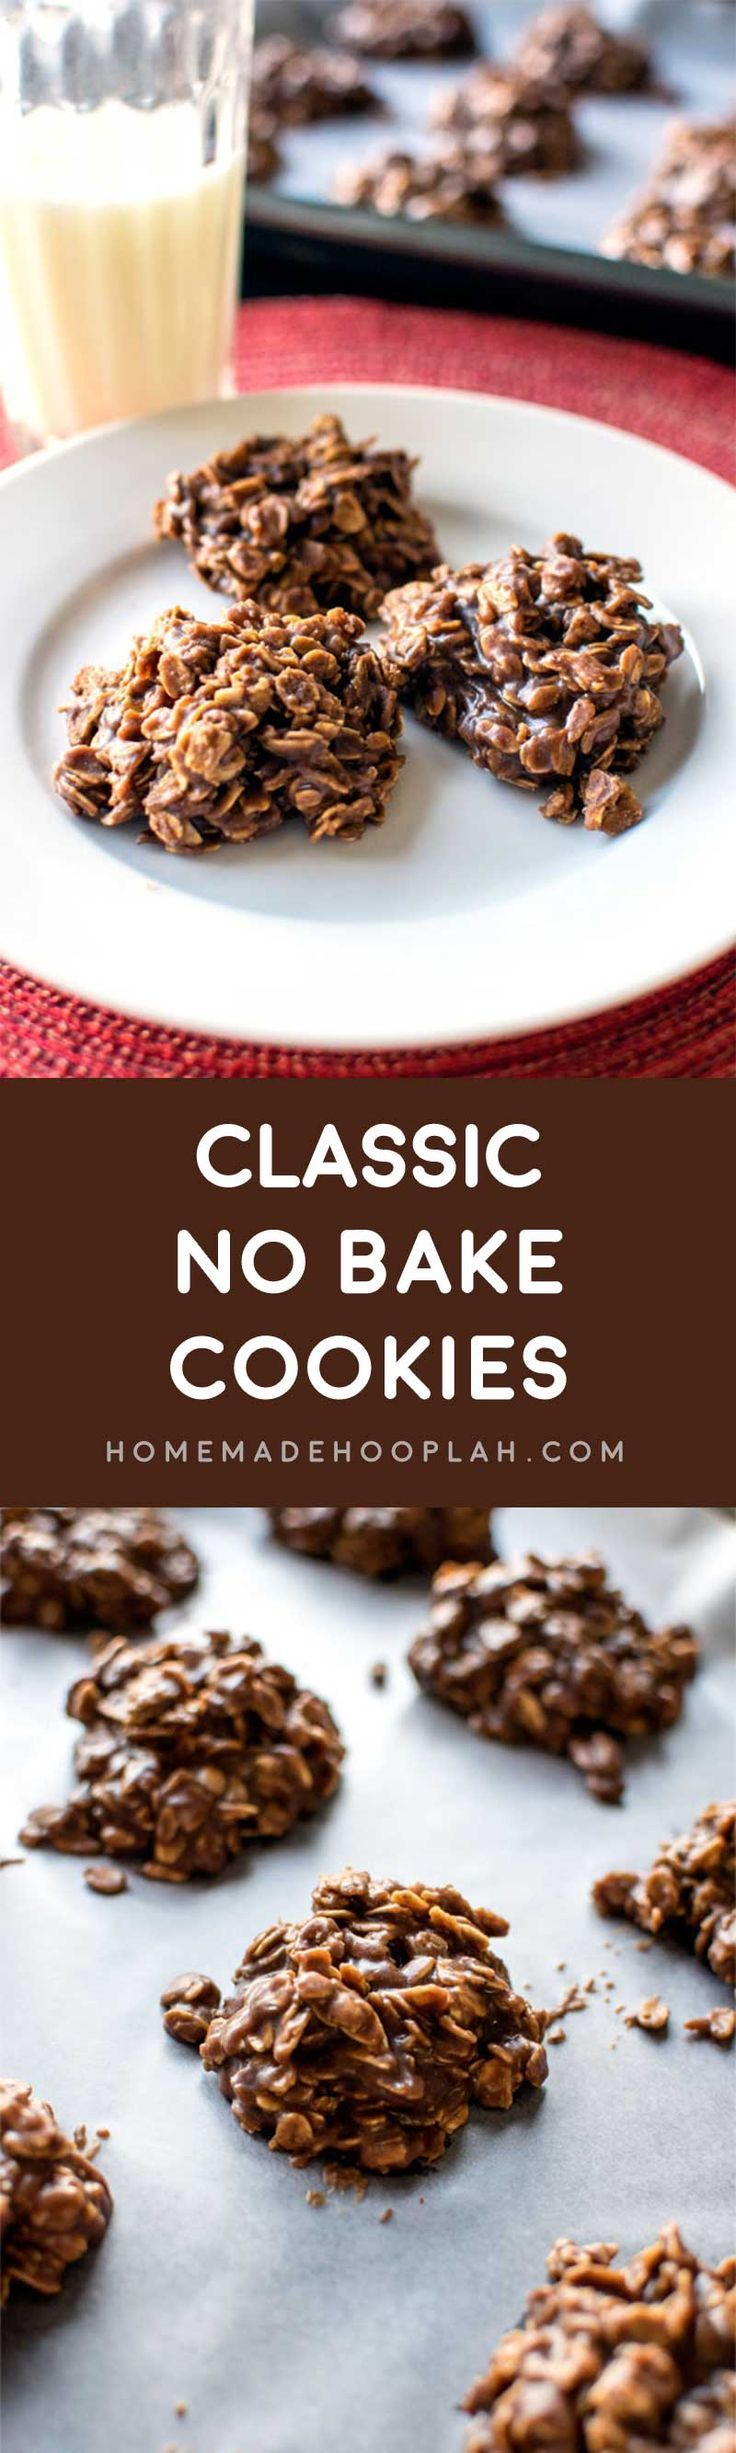 Classic No Bake Cookies! This recipe is a tried and true classic! Quick-cooking oats are mixed with a melted chocolate peanut butter sauce to make these simple and tasty cookies. | HomemadeHooplah.com